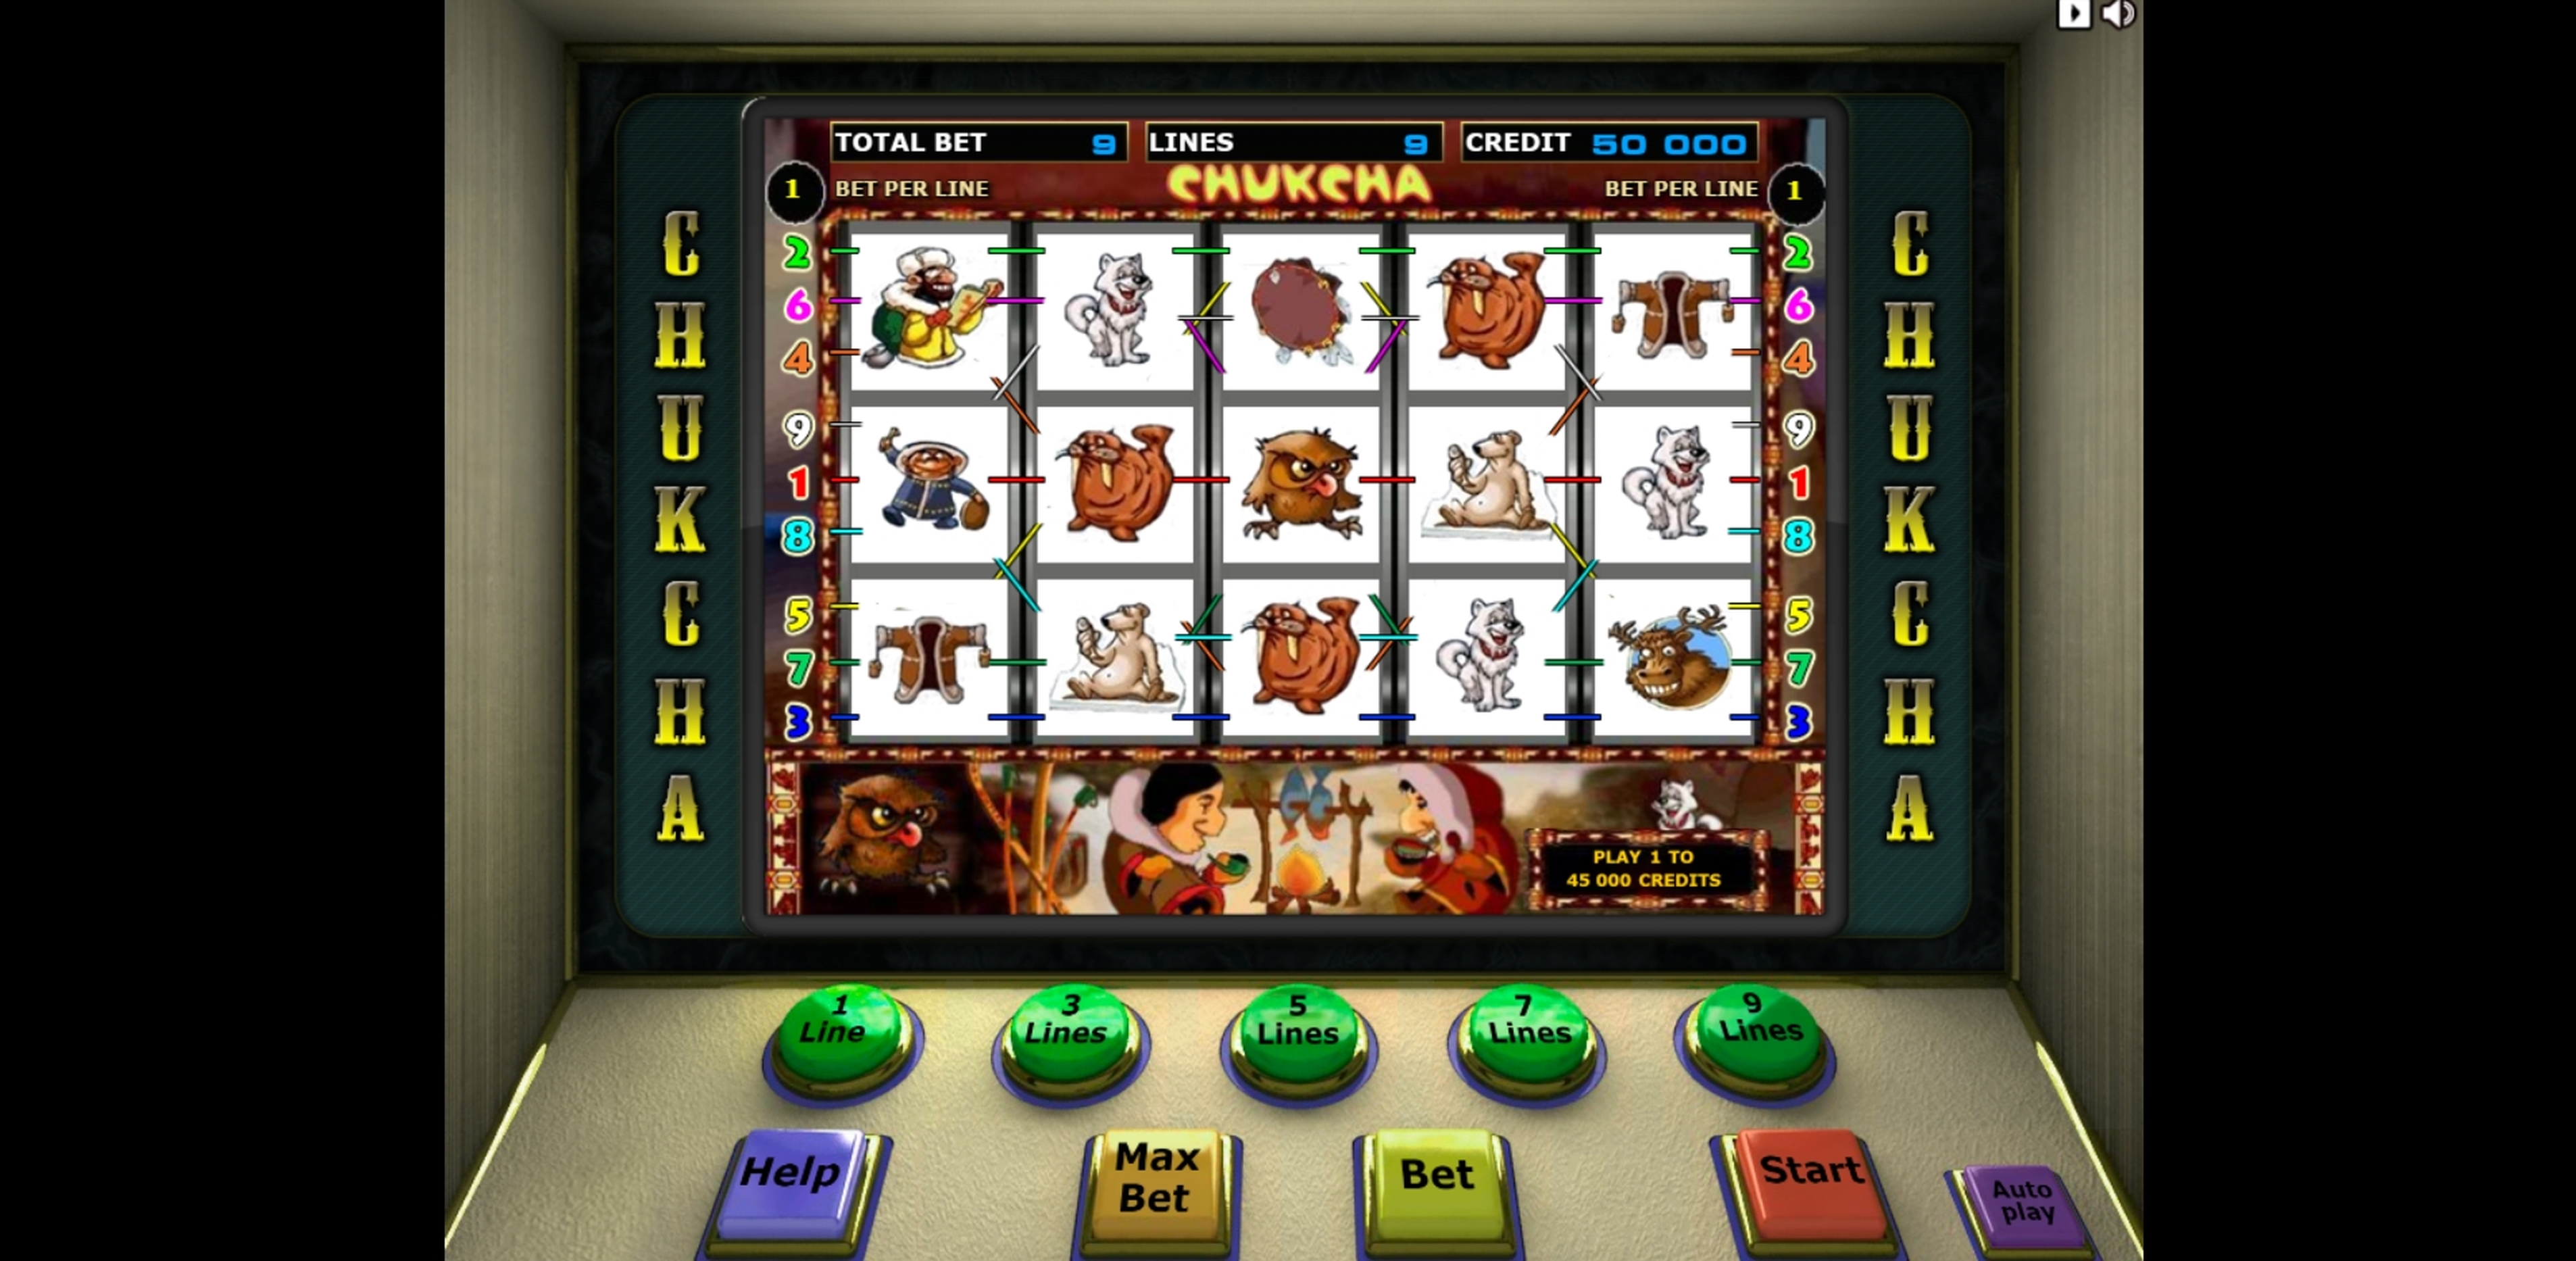 Reels in Chukcha Slot Game by Unicum